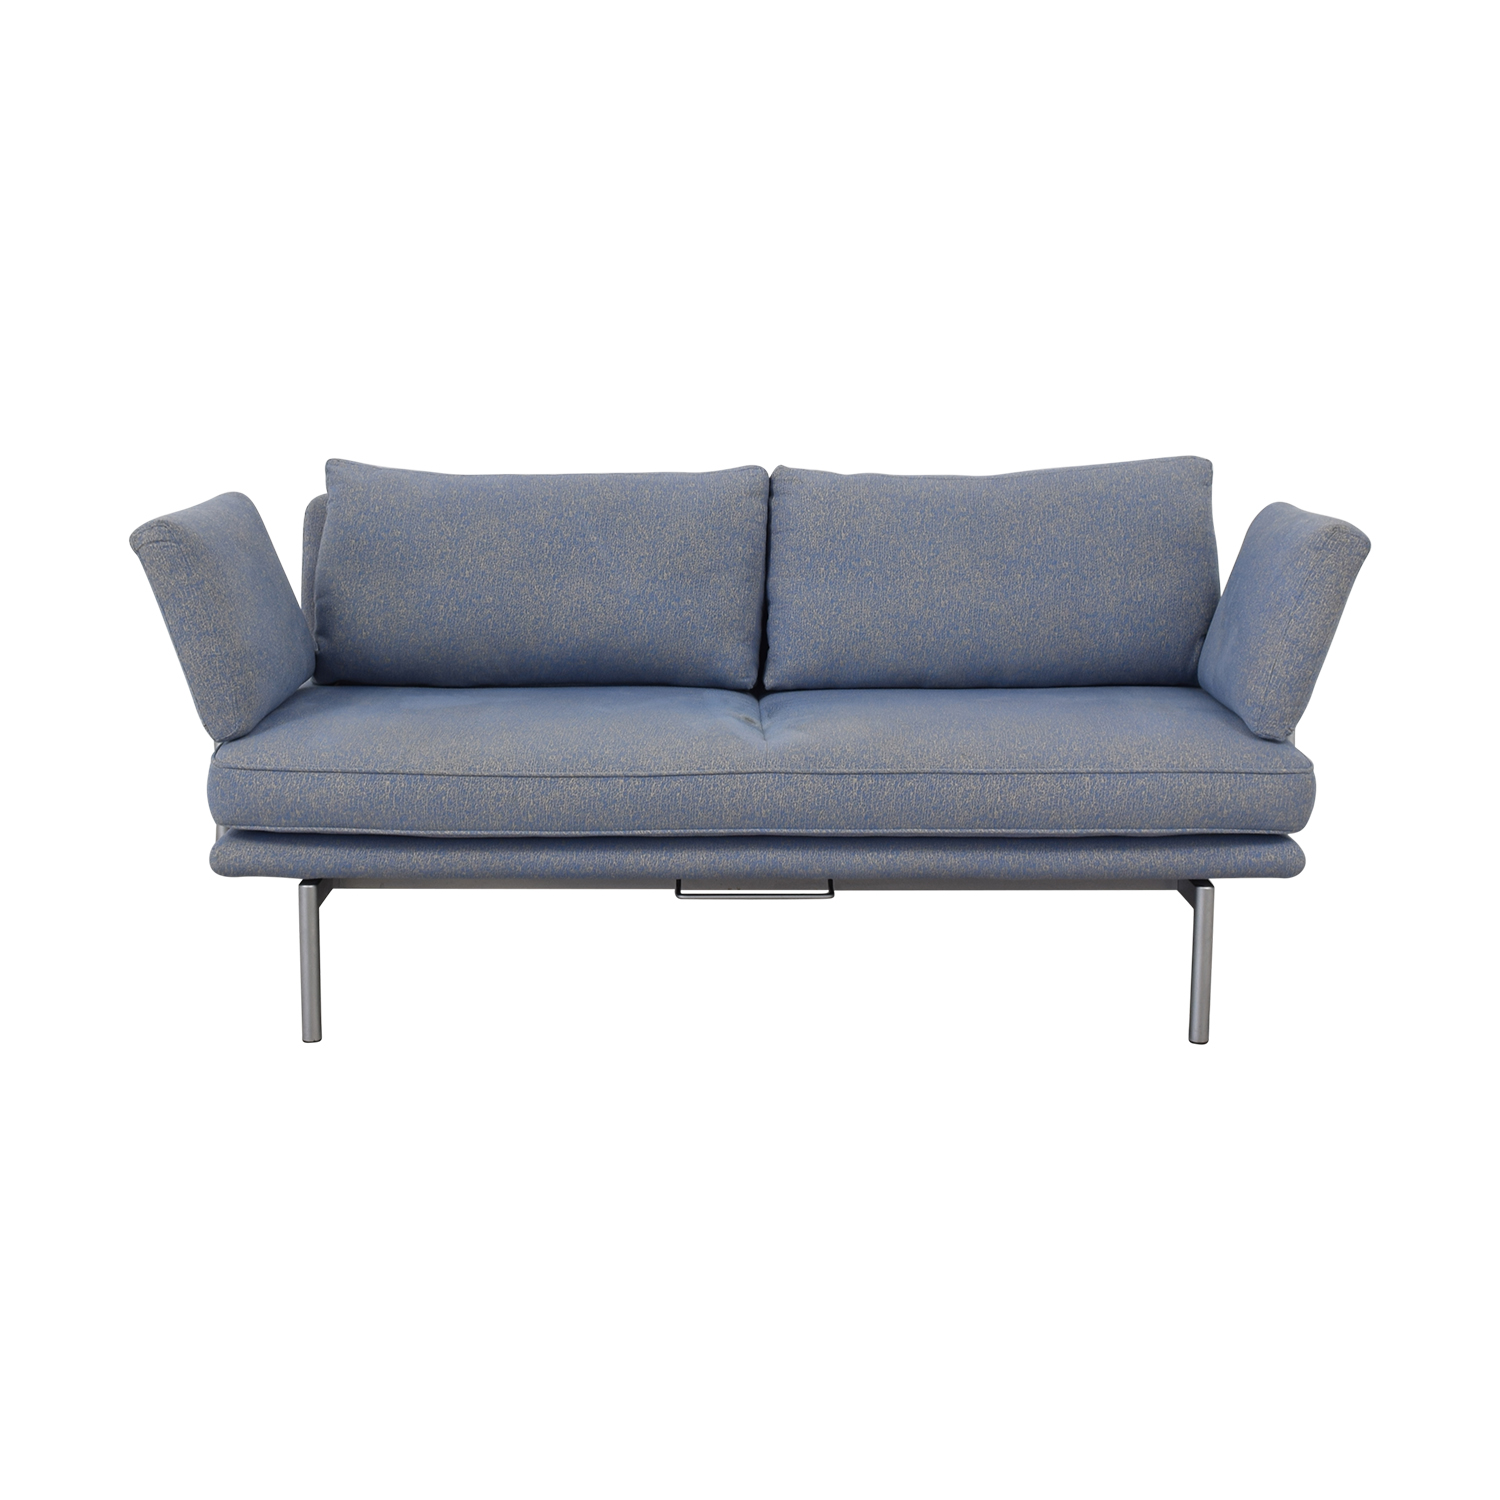 Contemporary Sofa with Adjustable Arms sale